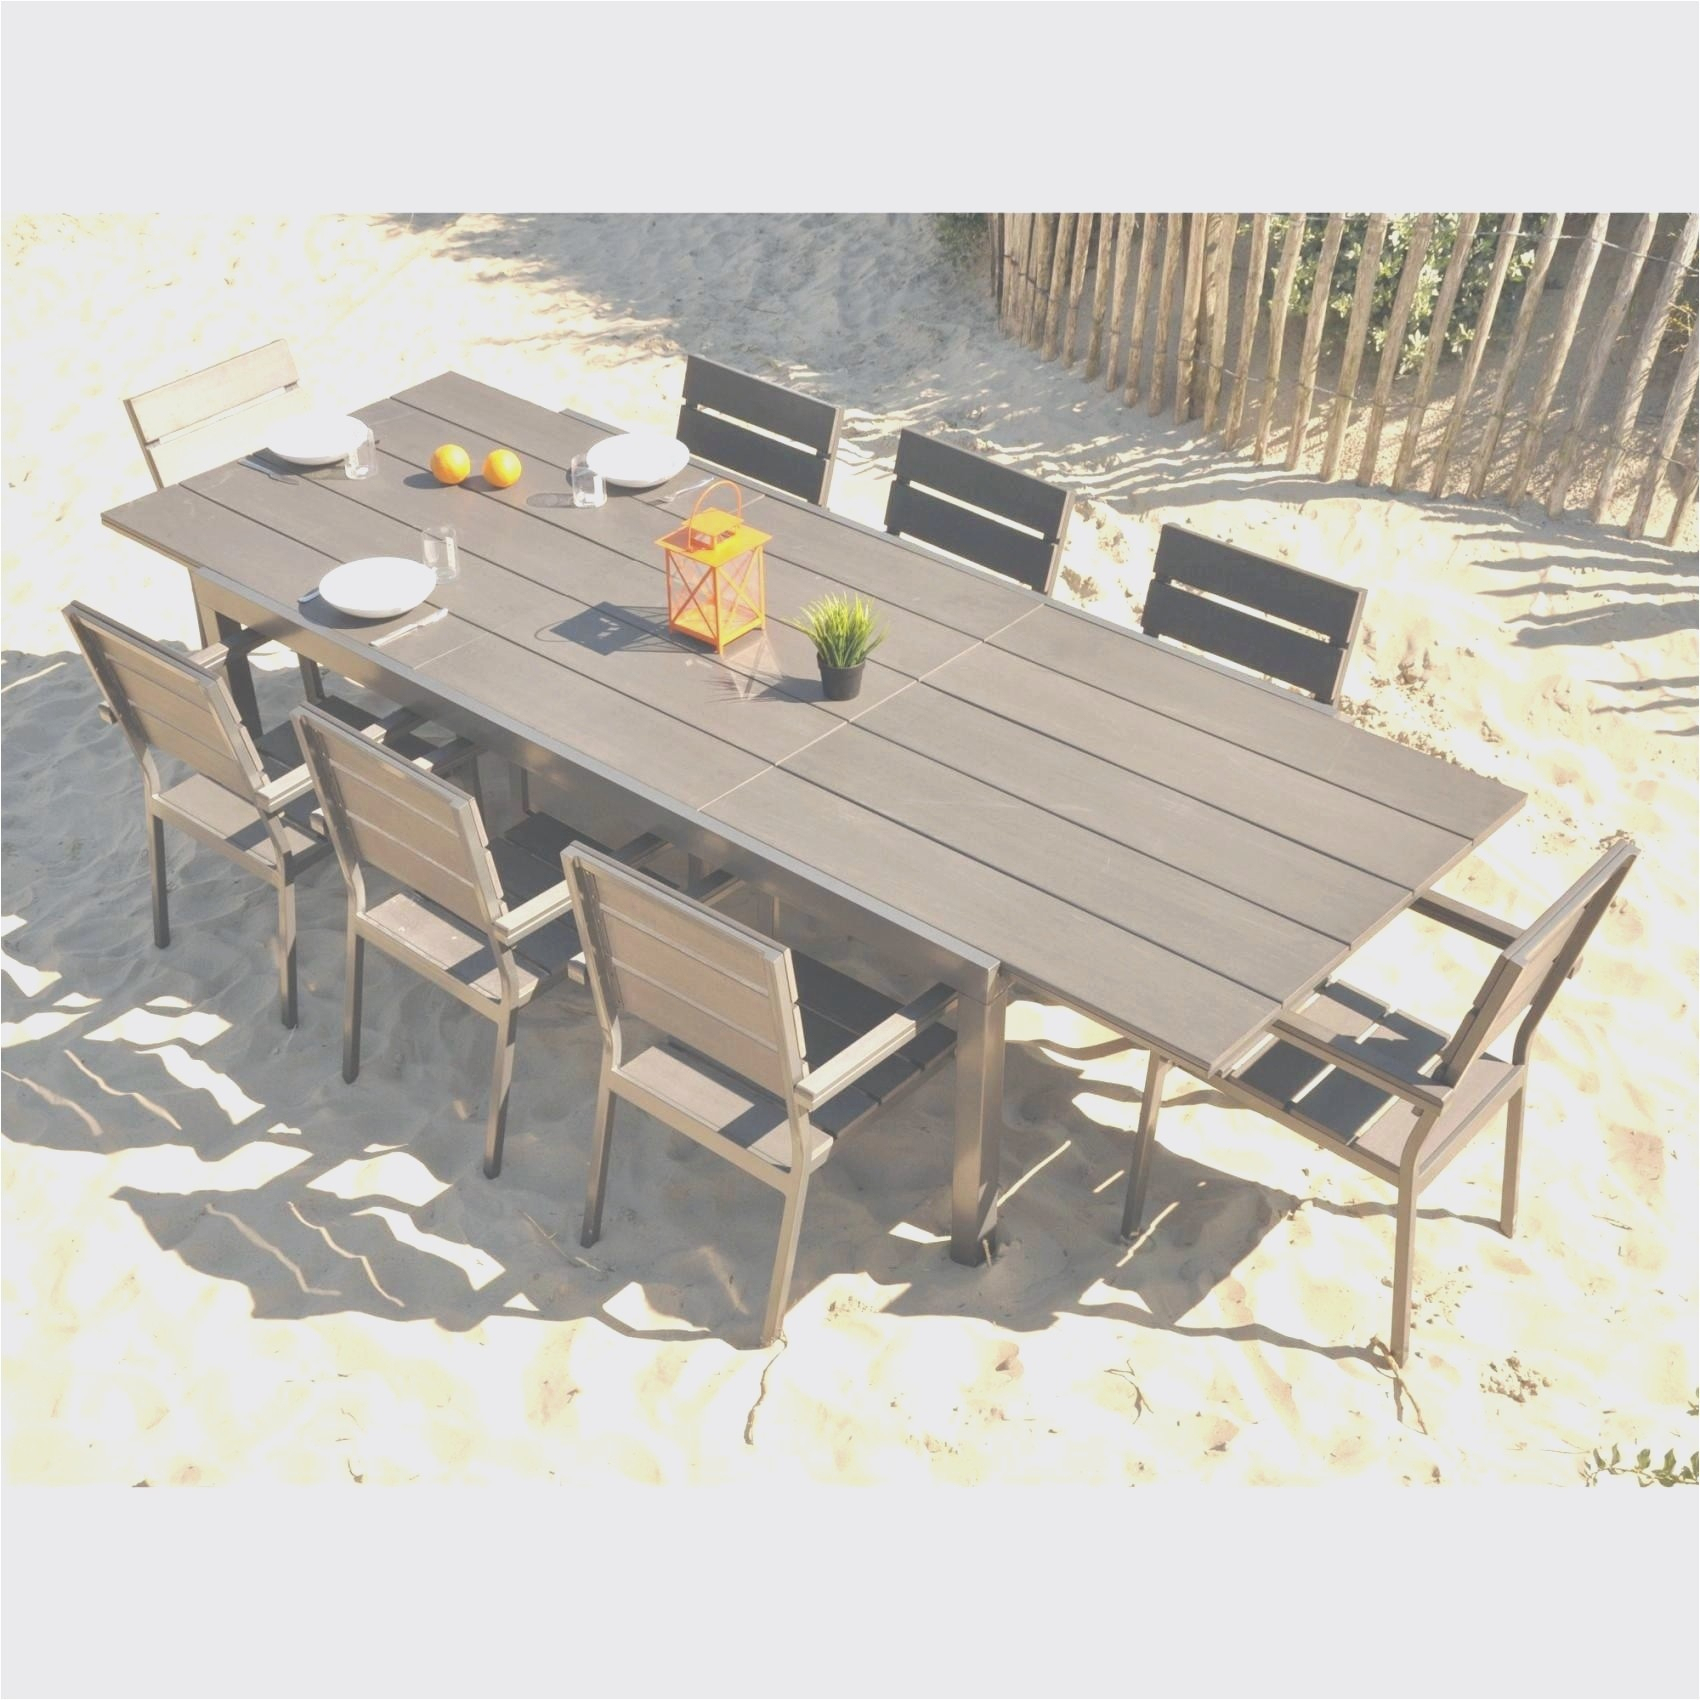 Banc De Jardin Jardiland New Table Aluminium Charmant Banc ... concernant Table De Jardin Jardiland